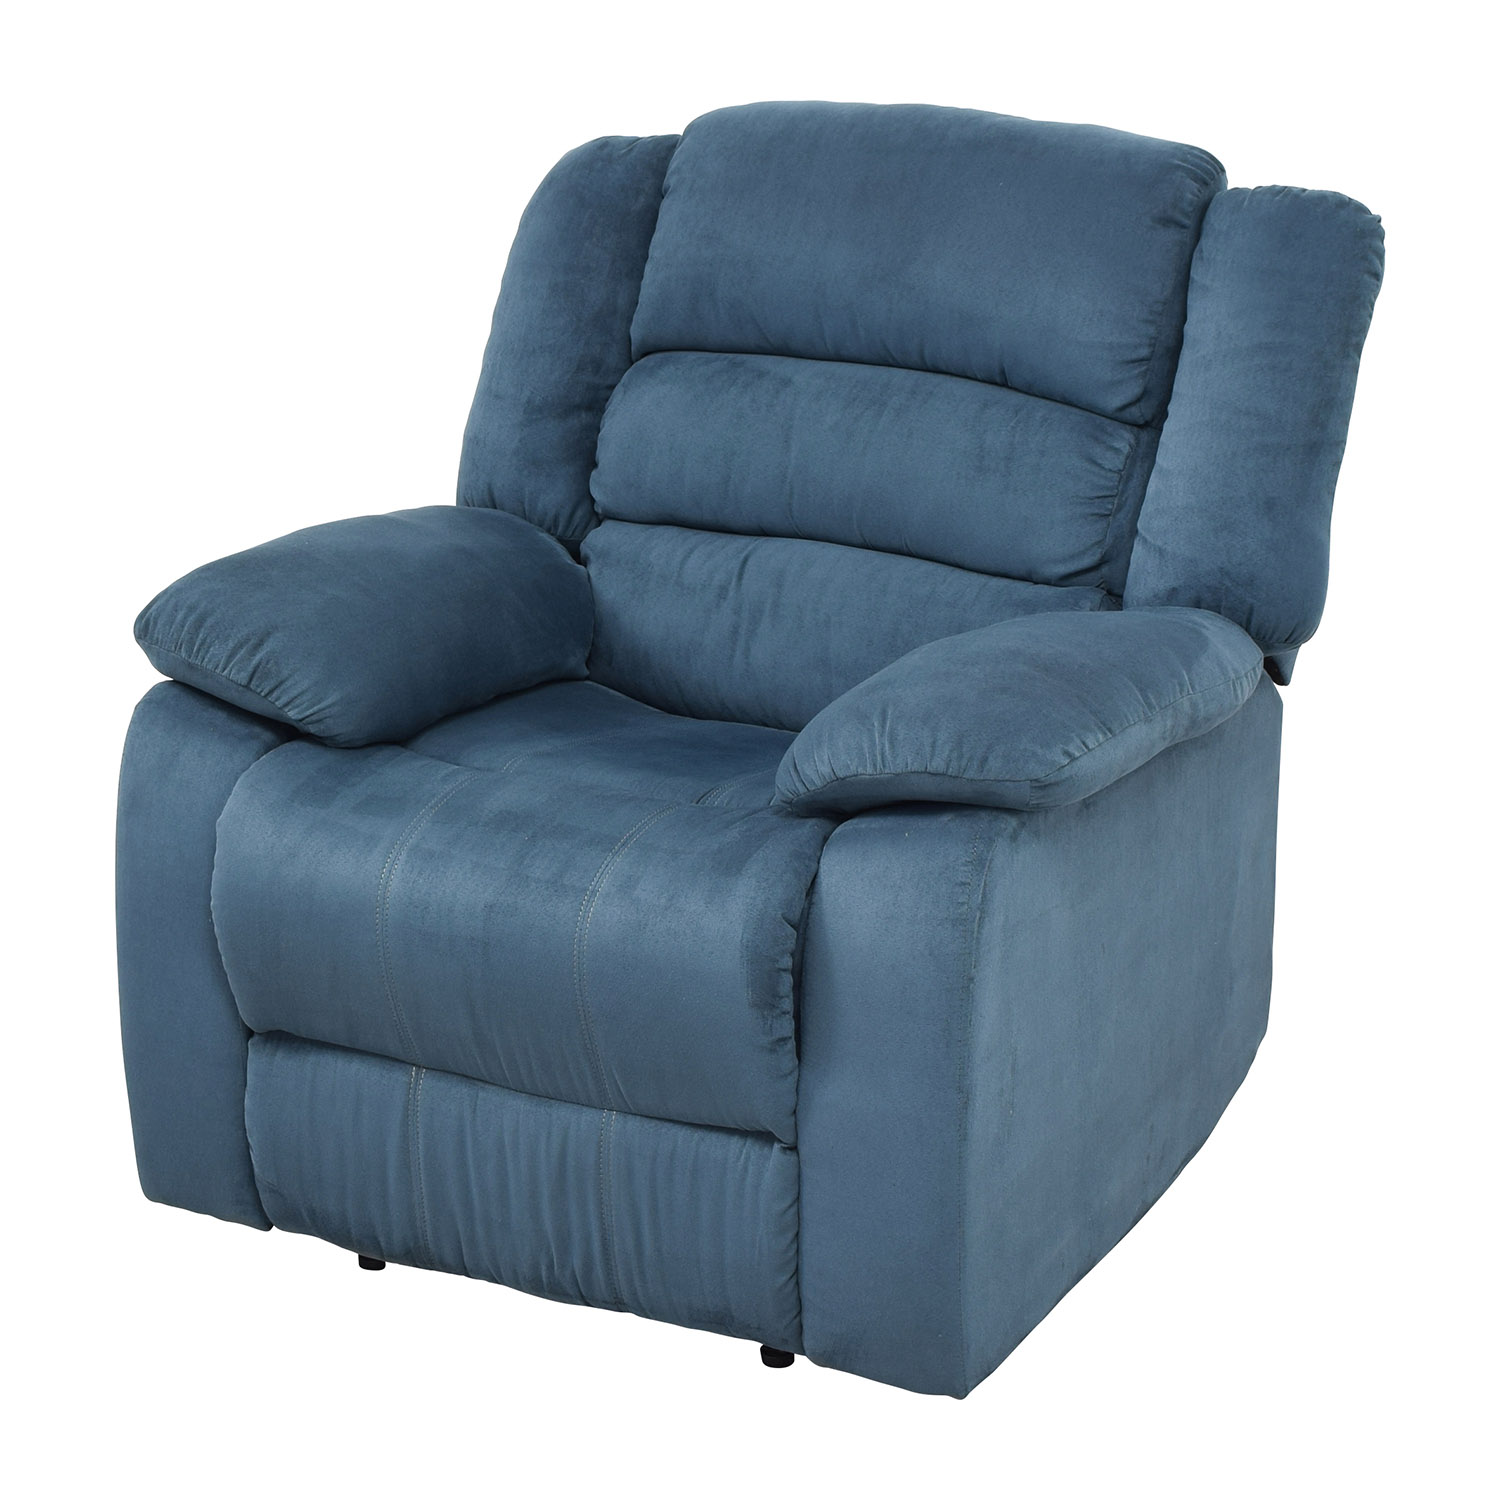 Nathaniel Home Express Addison Contemporary Recliner sale